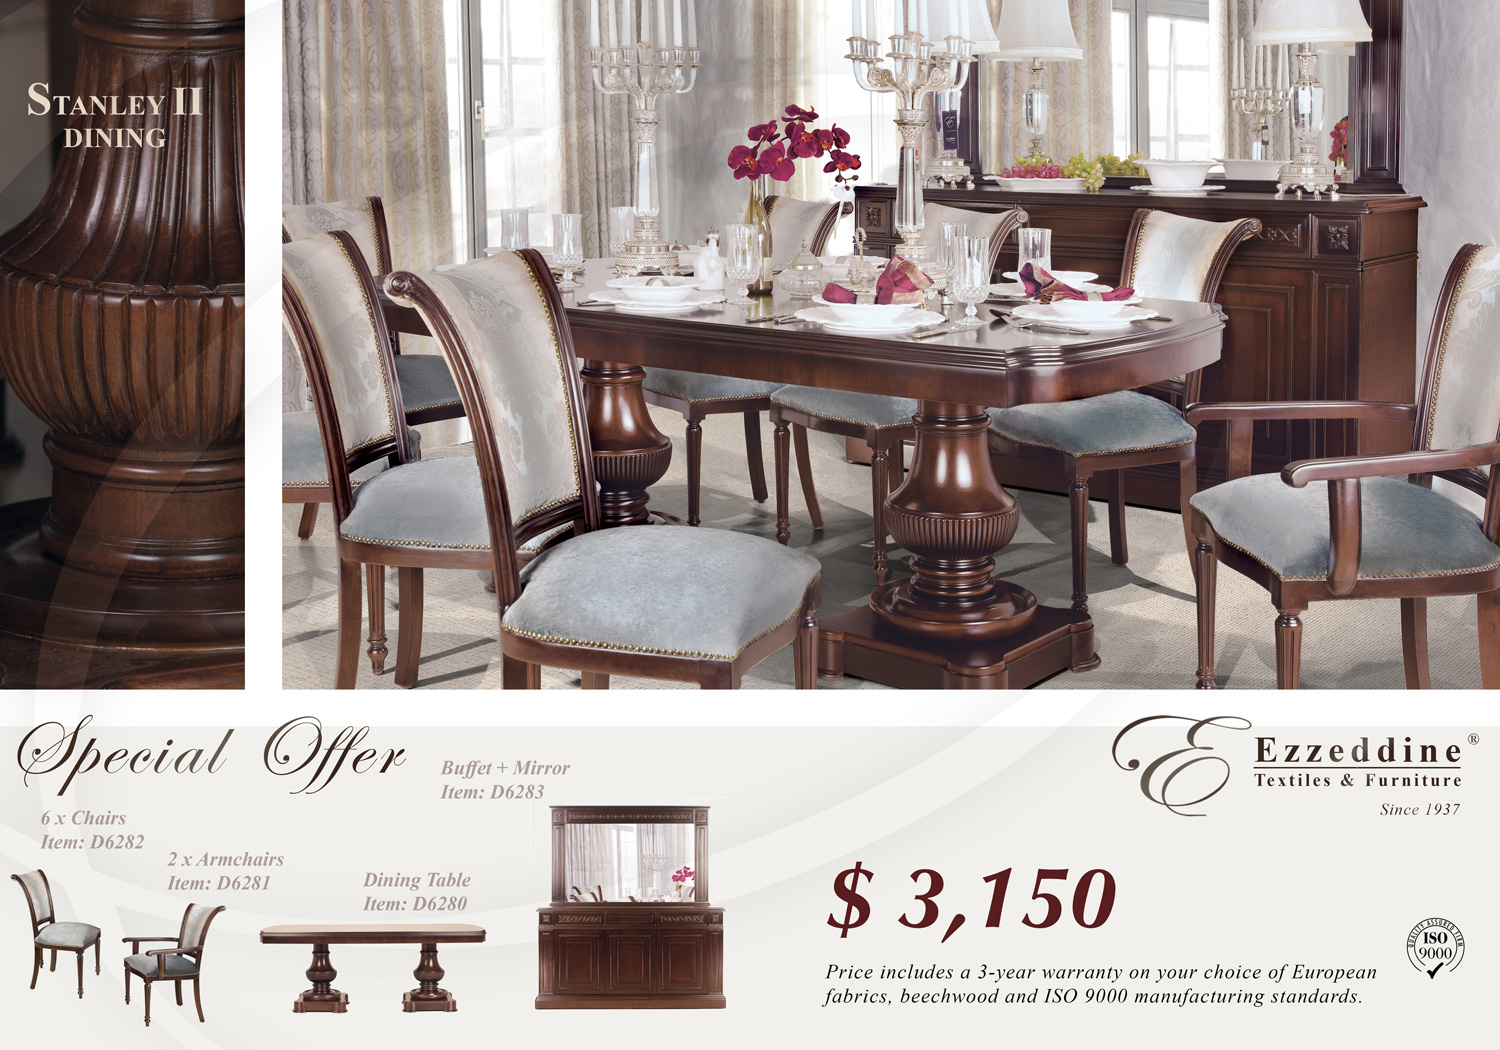 Limited Time Offer - Dining Room - Only $3,150 - 10 Piece Set Dining Room